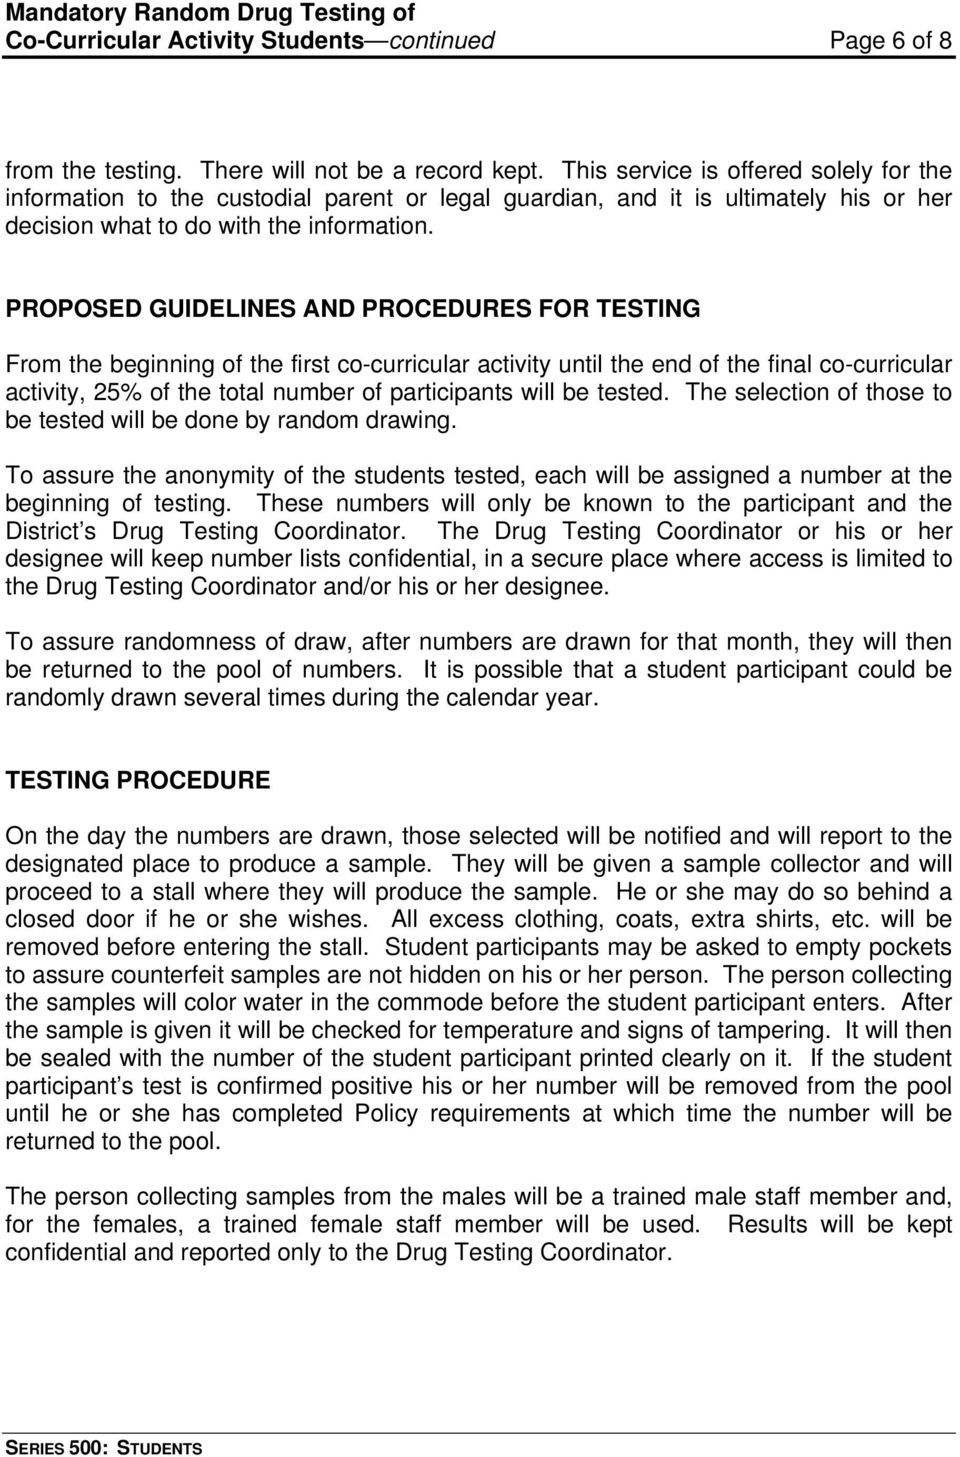 mandatory random drug testing Oak creek - high-school students who want permits to park in school lots could  be required next year to undergo random drug testing.